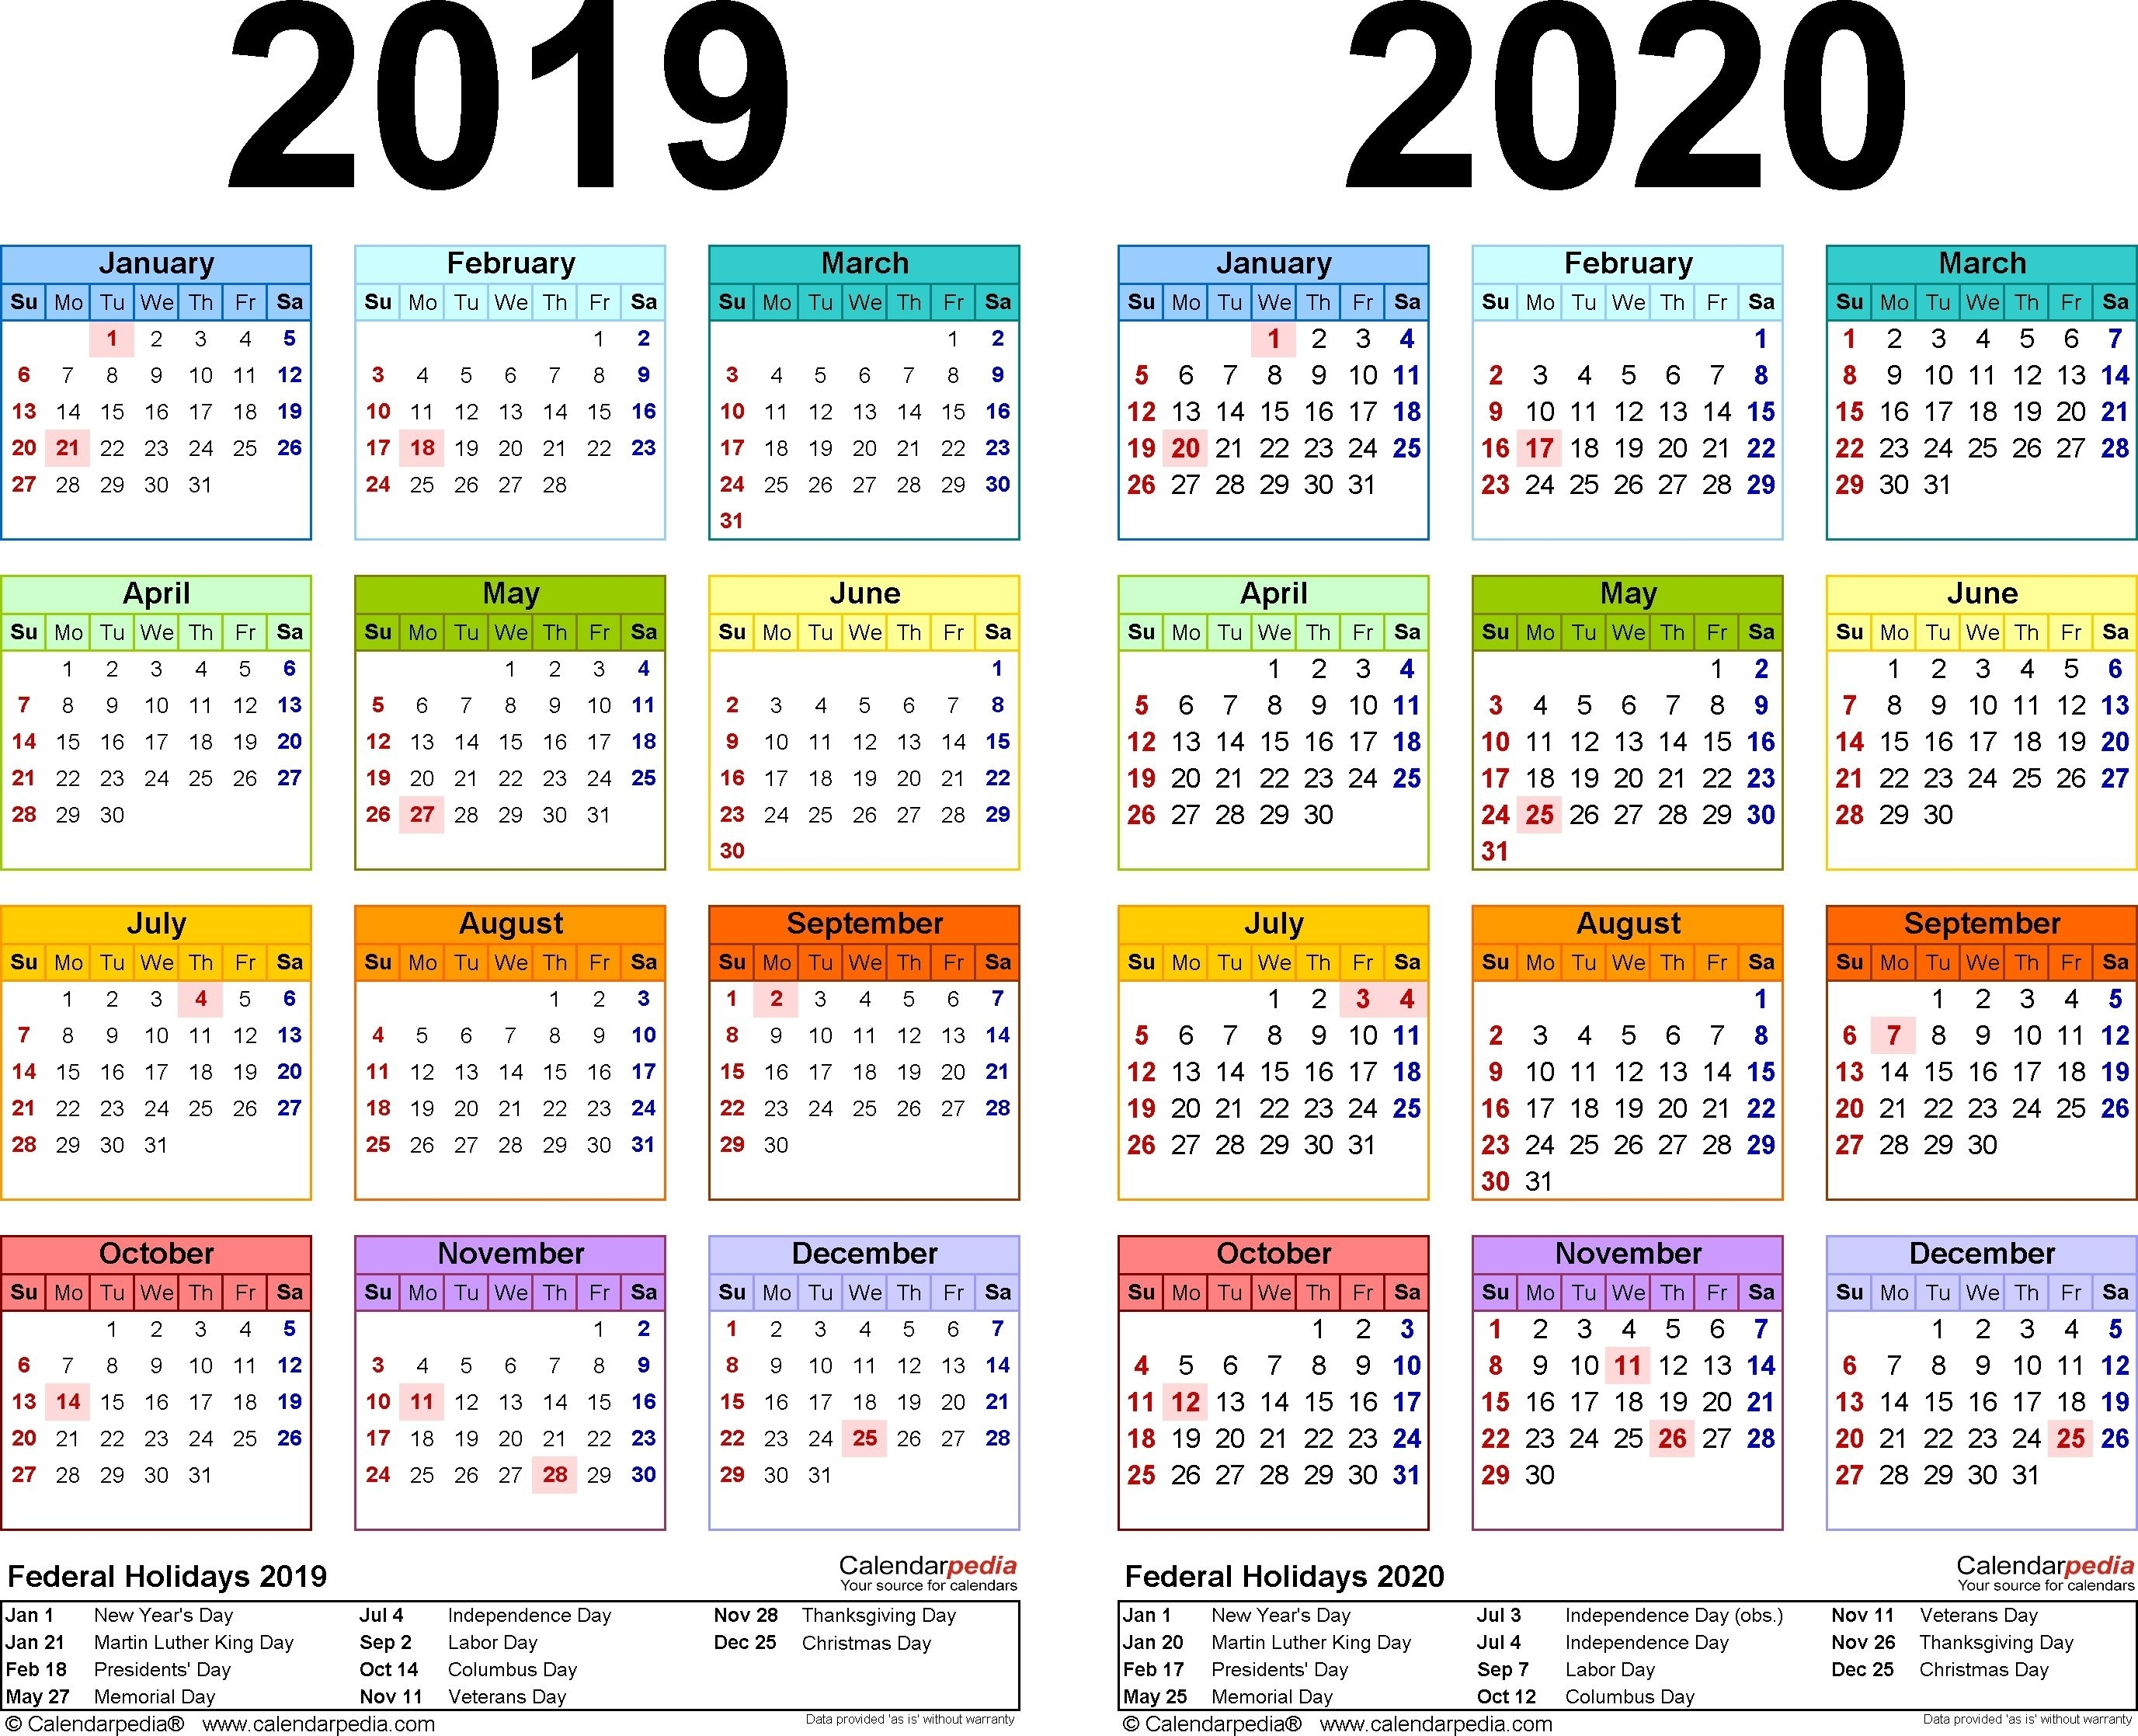 2019-2020 Calendar - Free Printable Two-Year Excel Calendars 2020 intended for Excel Calendar At A Glance 2020